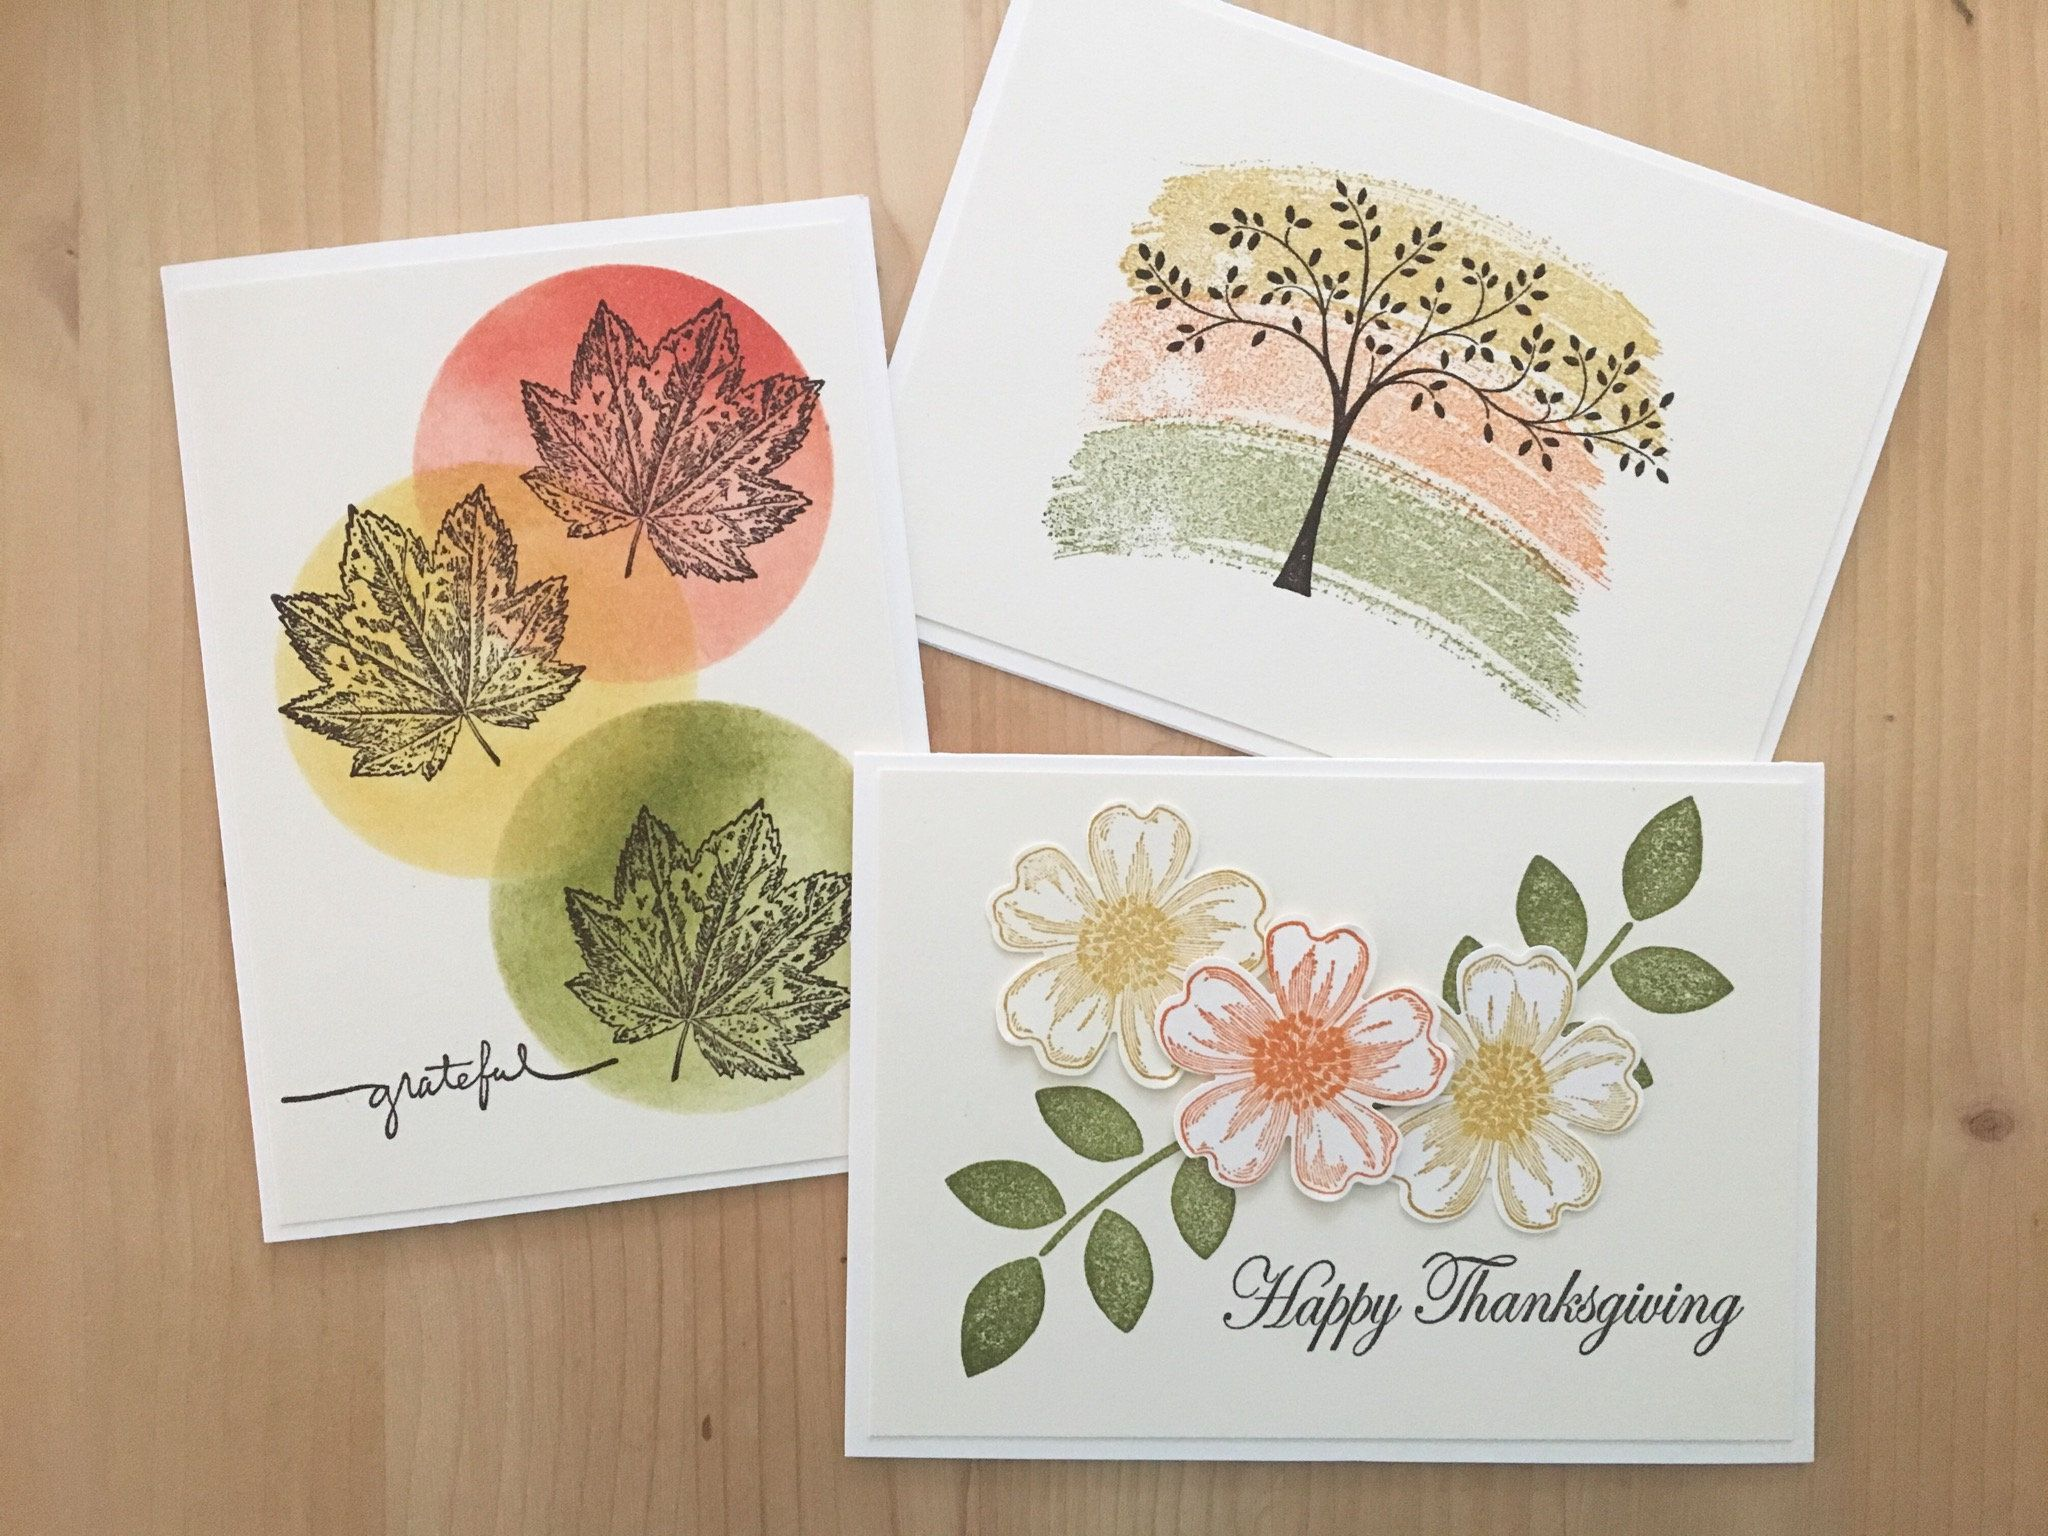 Handmade Thanksgiving Cards Assortment Set Of Blank Fall Greeting